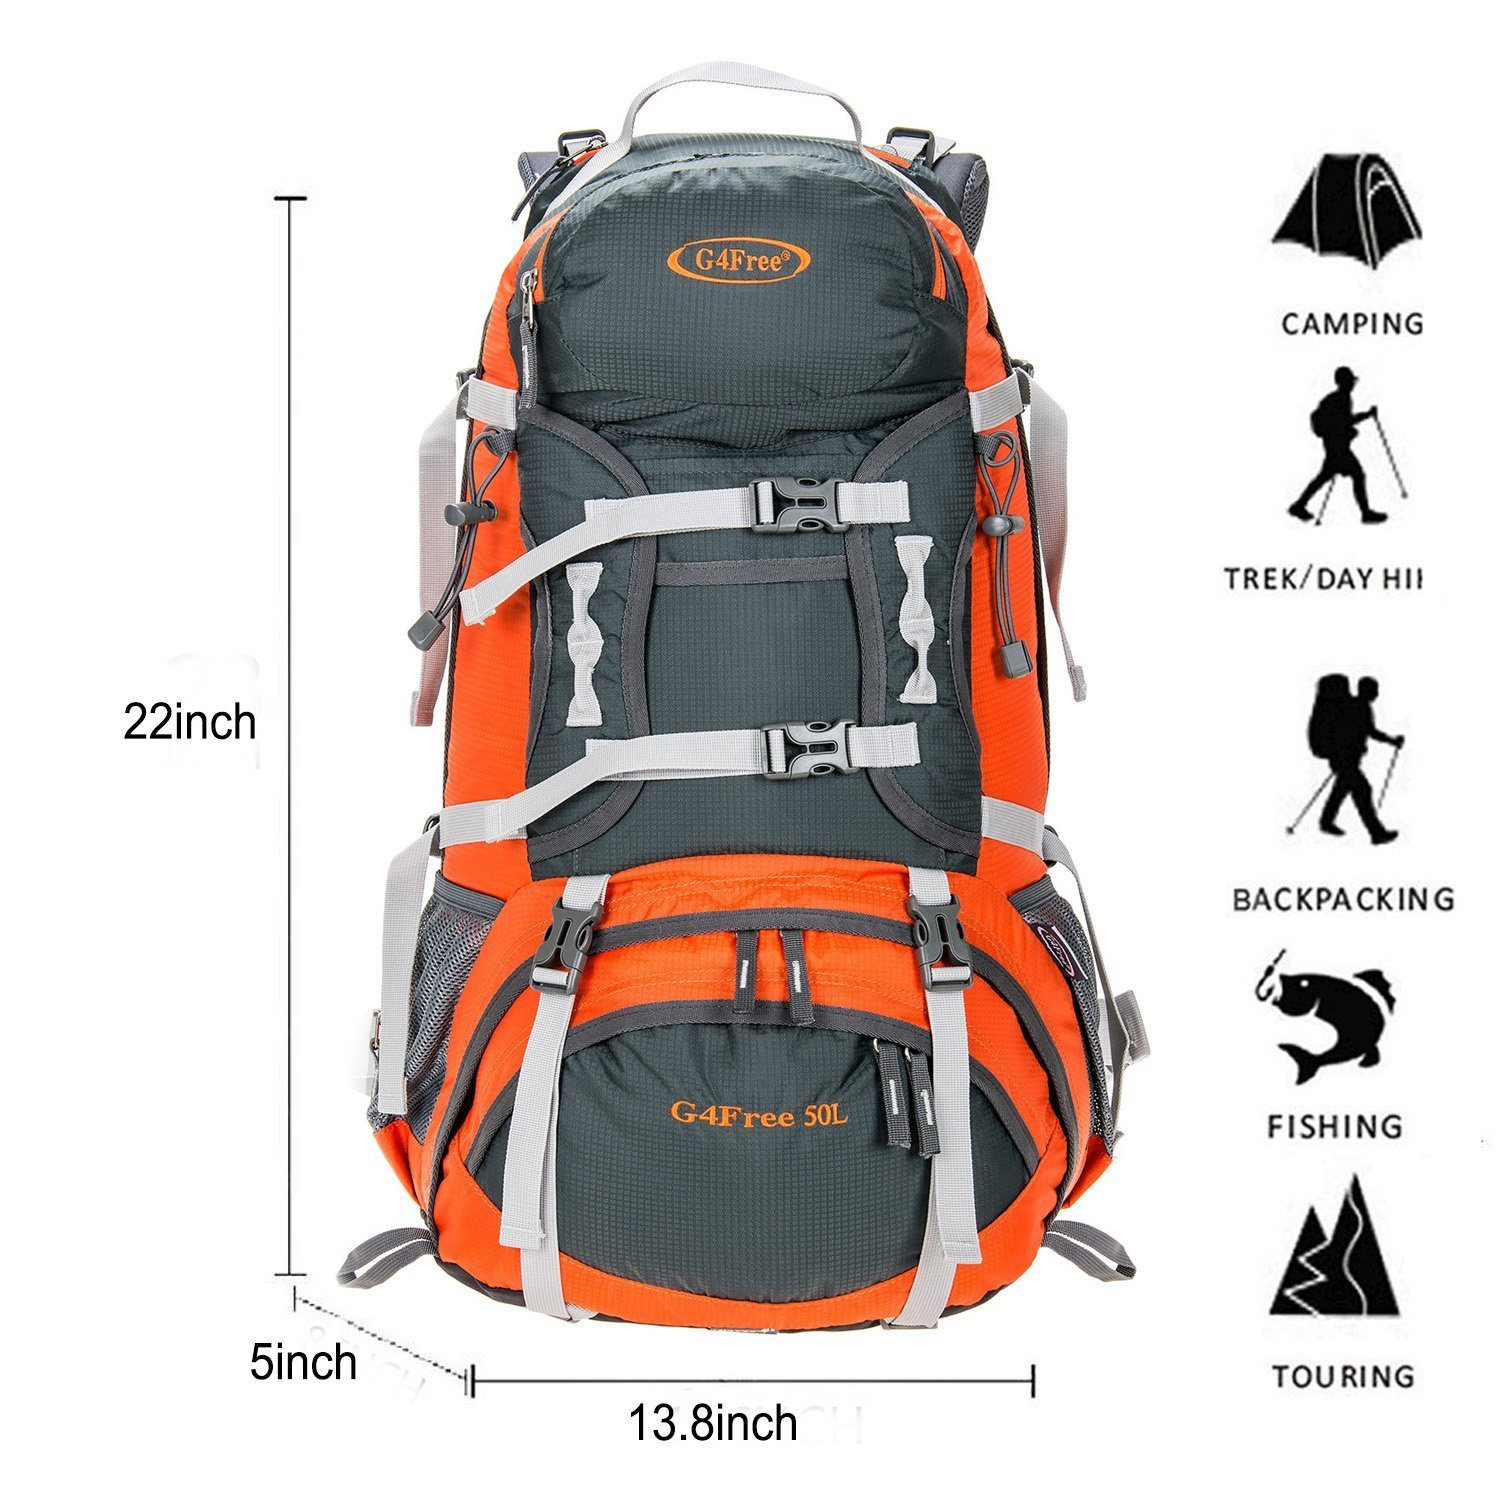 5ff9215e80 G4Free 50L Outdoor Sports Camping Hiking Waterproof Backpack Rucksack  Mountaineering Bag for Traveling Trekking with Rain Cover  Amazon.co.uk   Sports   ...